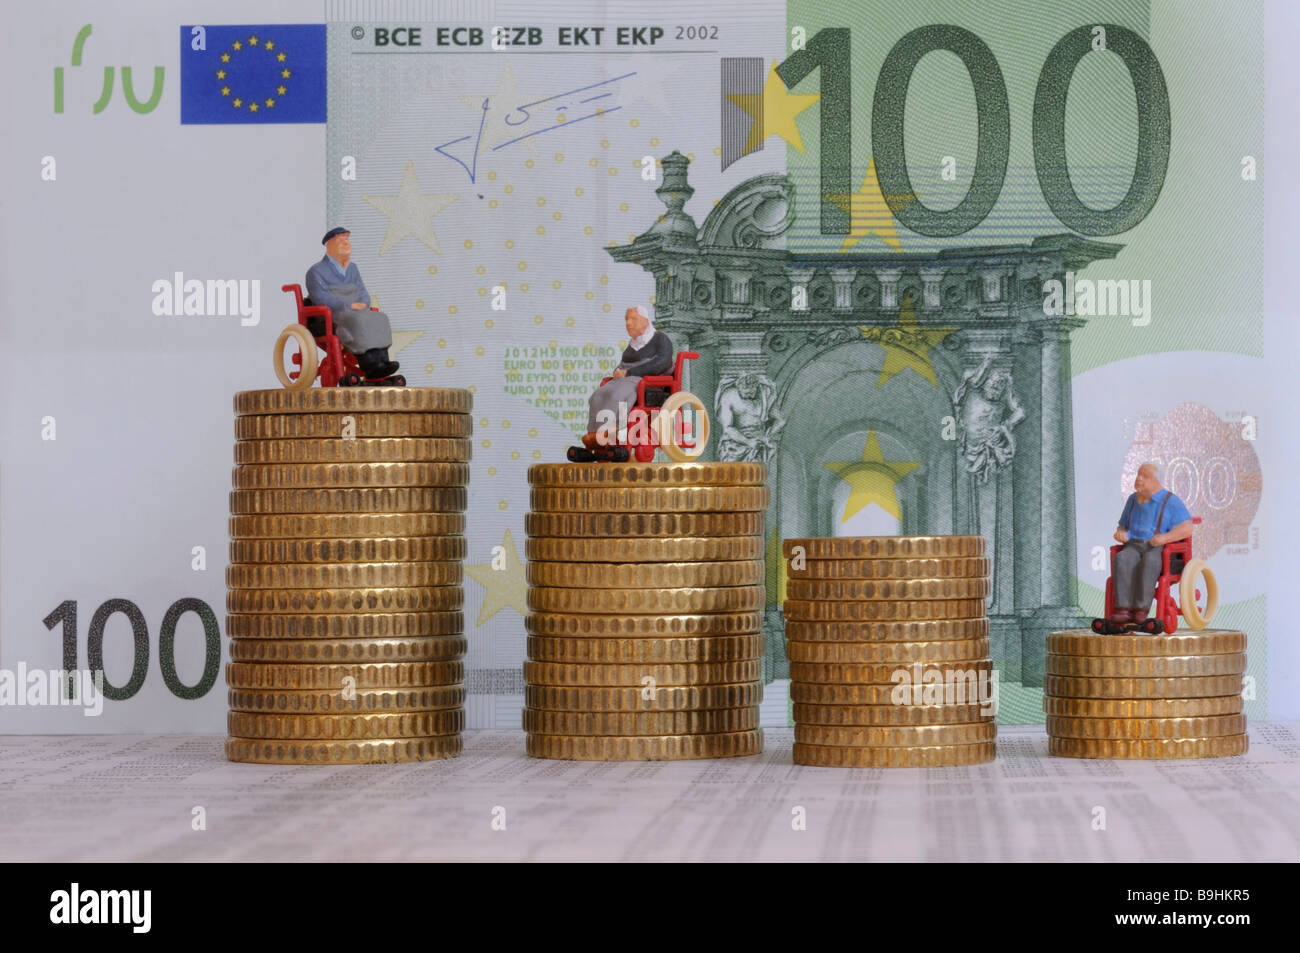 Figures of wheelchair users on stacks of coins, in front of a 100 eur bill, symbolic picture for attendance allowance - Stock Image